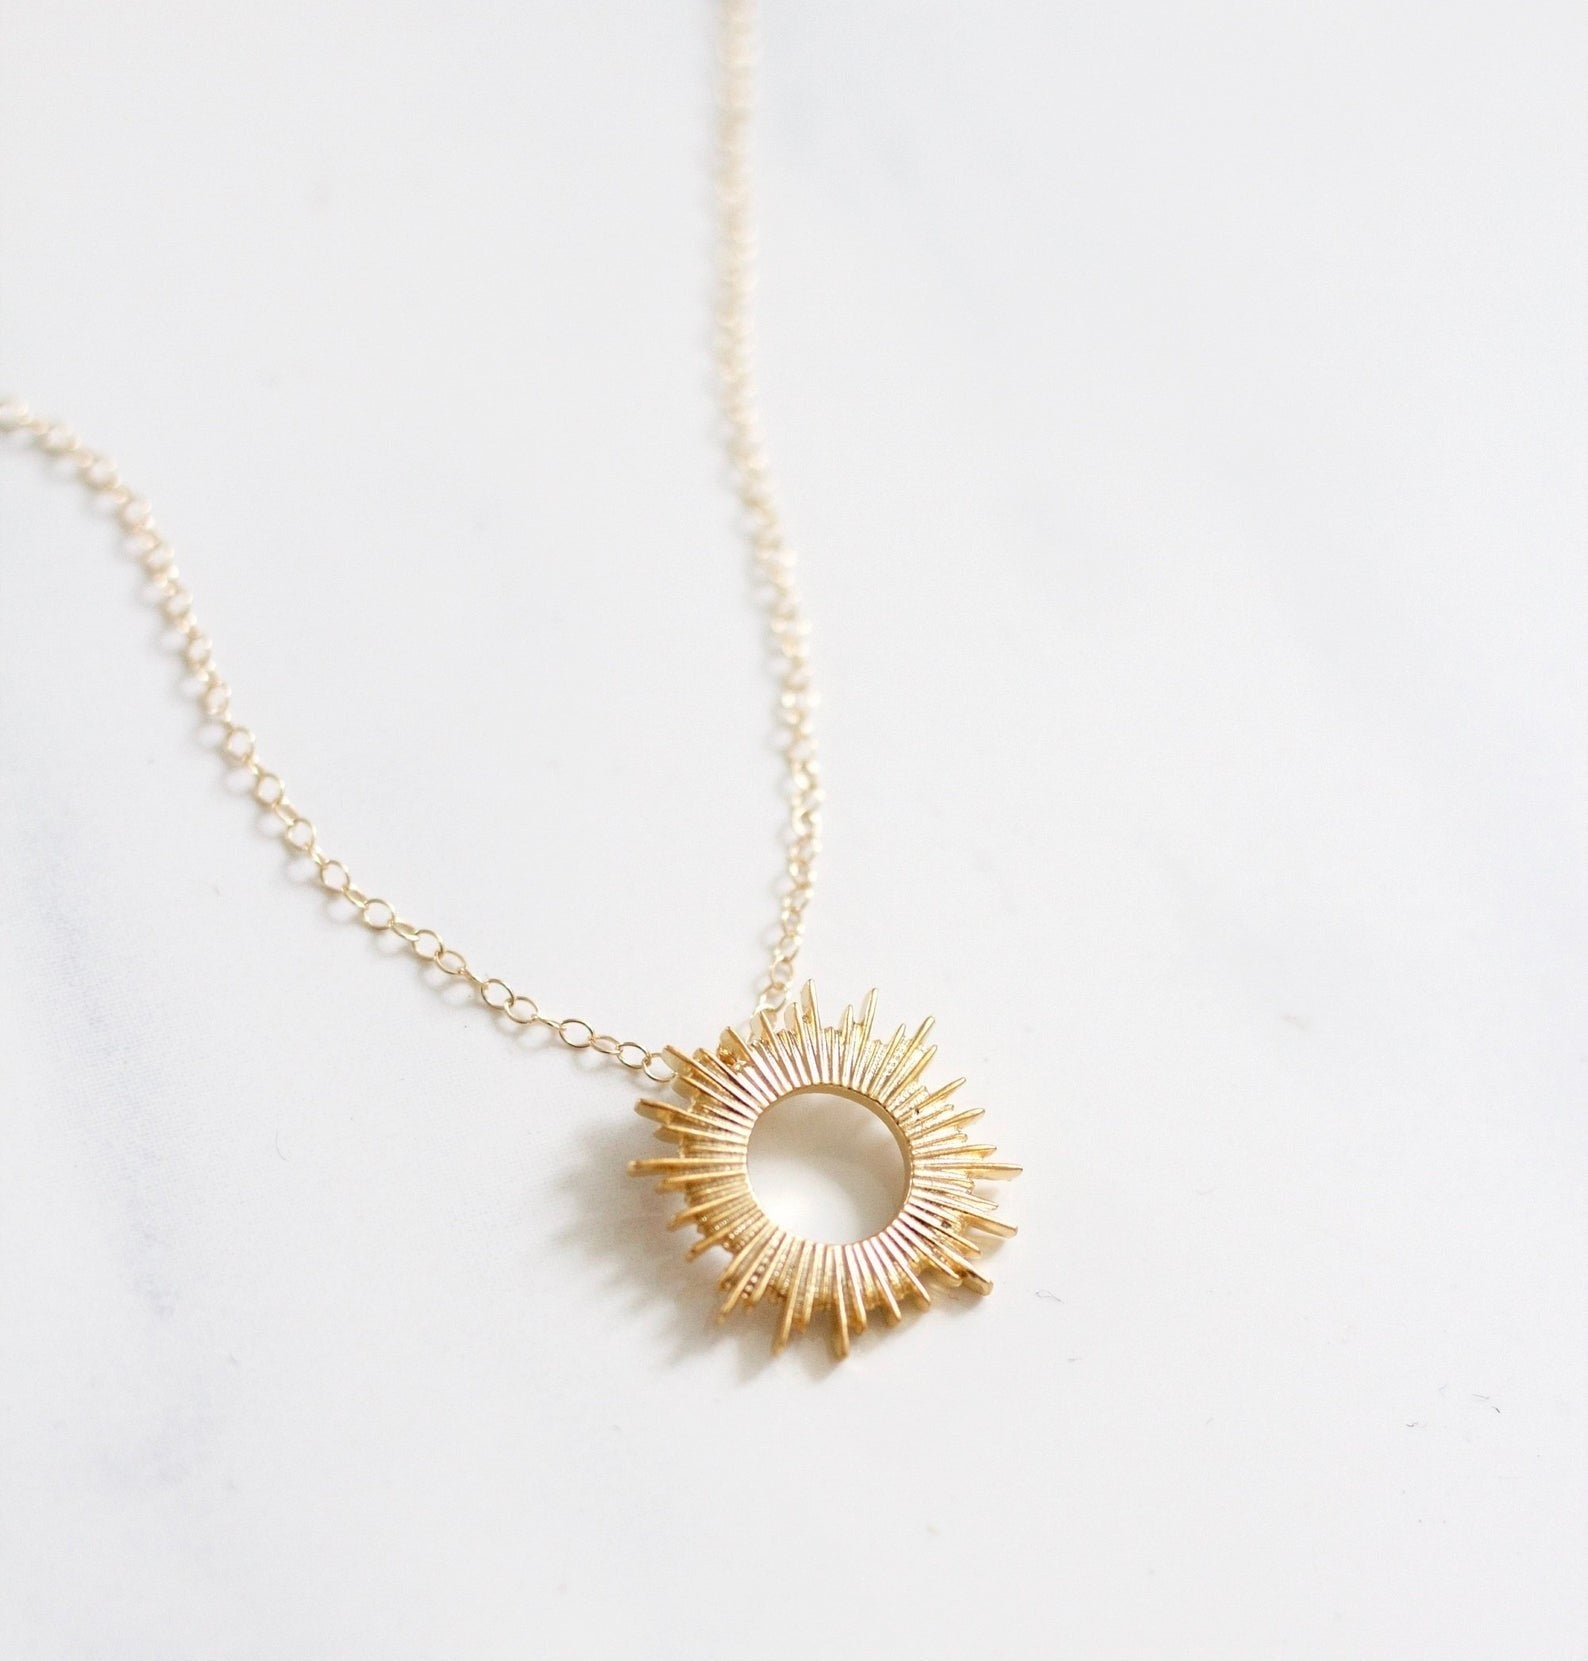 the gold sunburst necklace on a chain